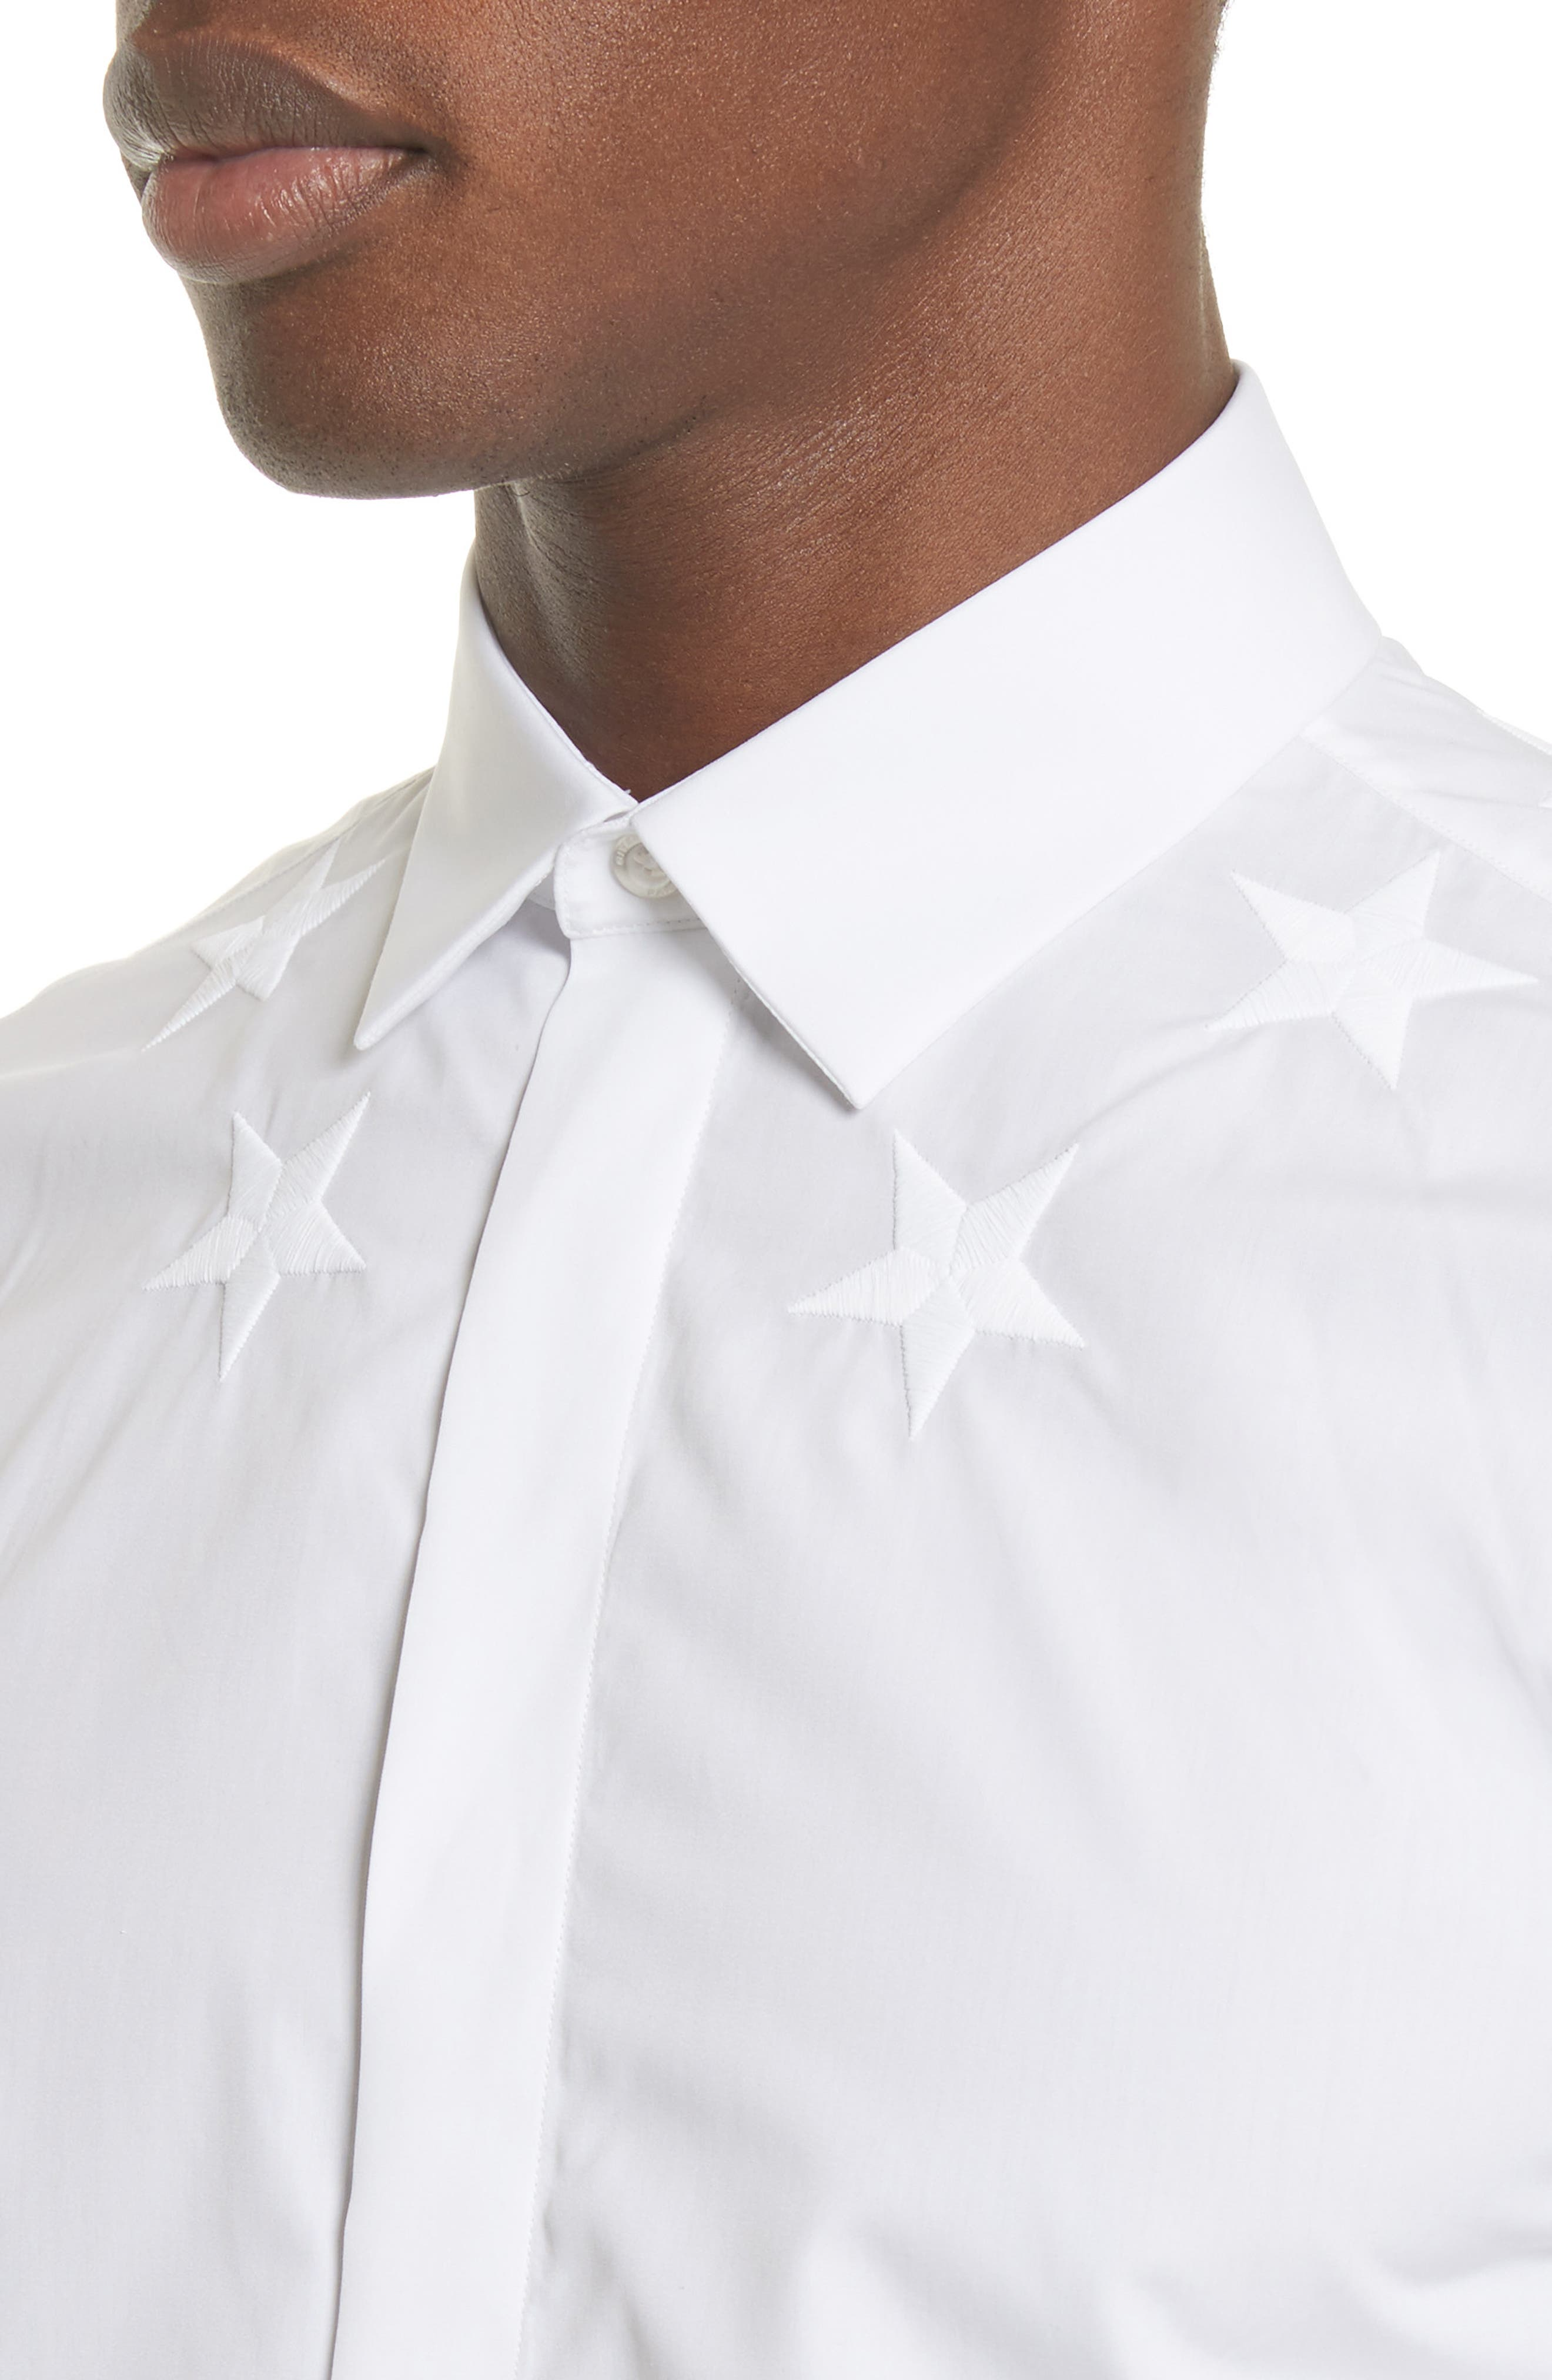 Embroidered Star Dress Shirt,                             Alternate thumbnail 5, color,                             100